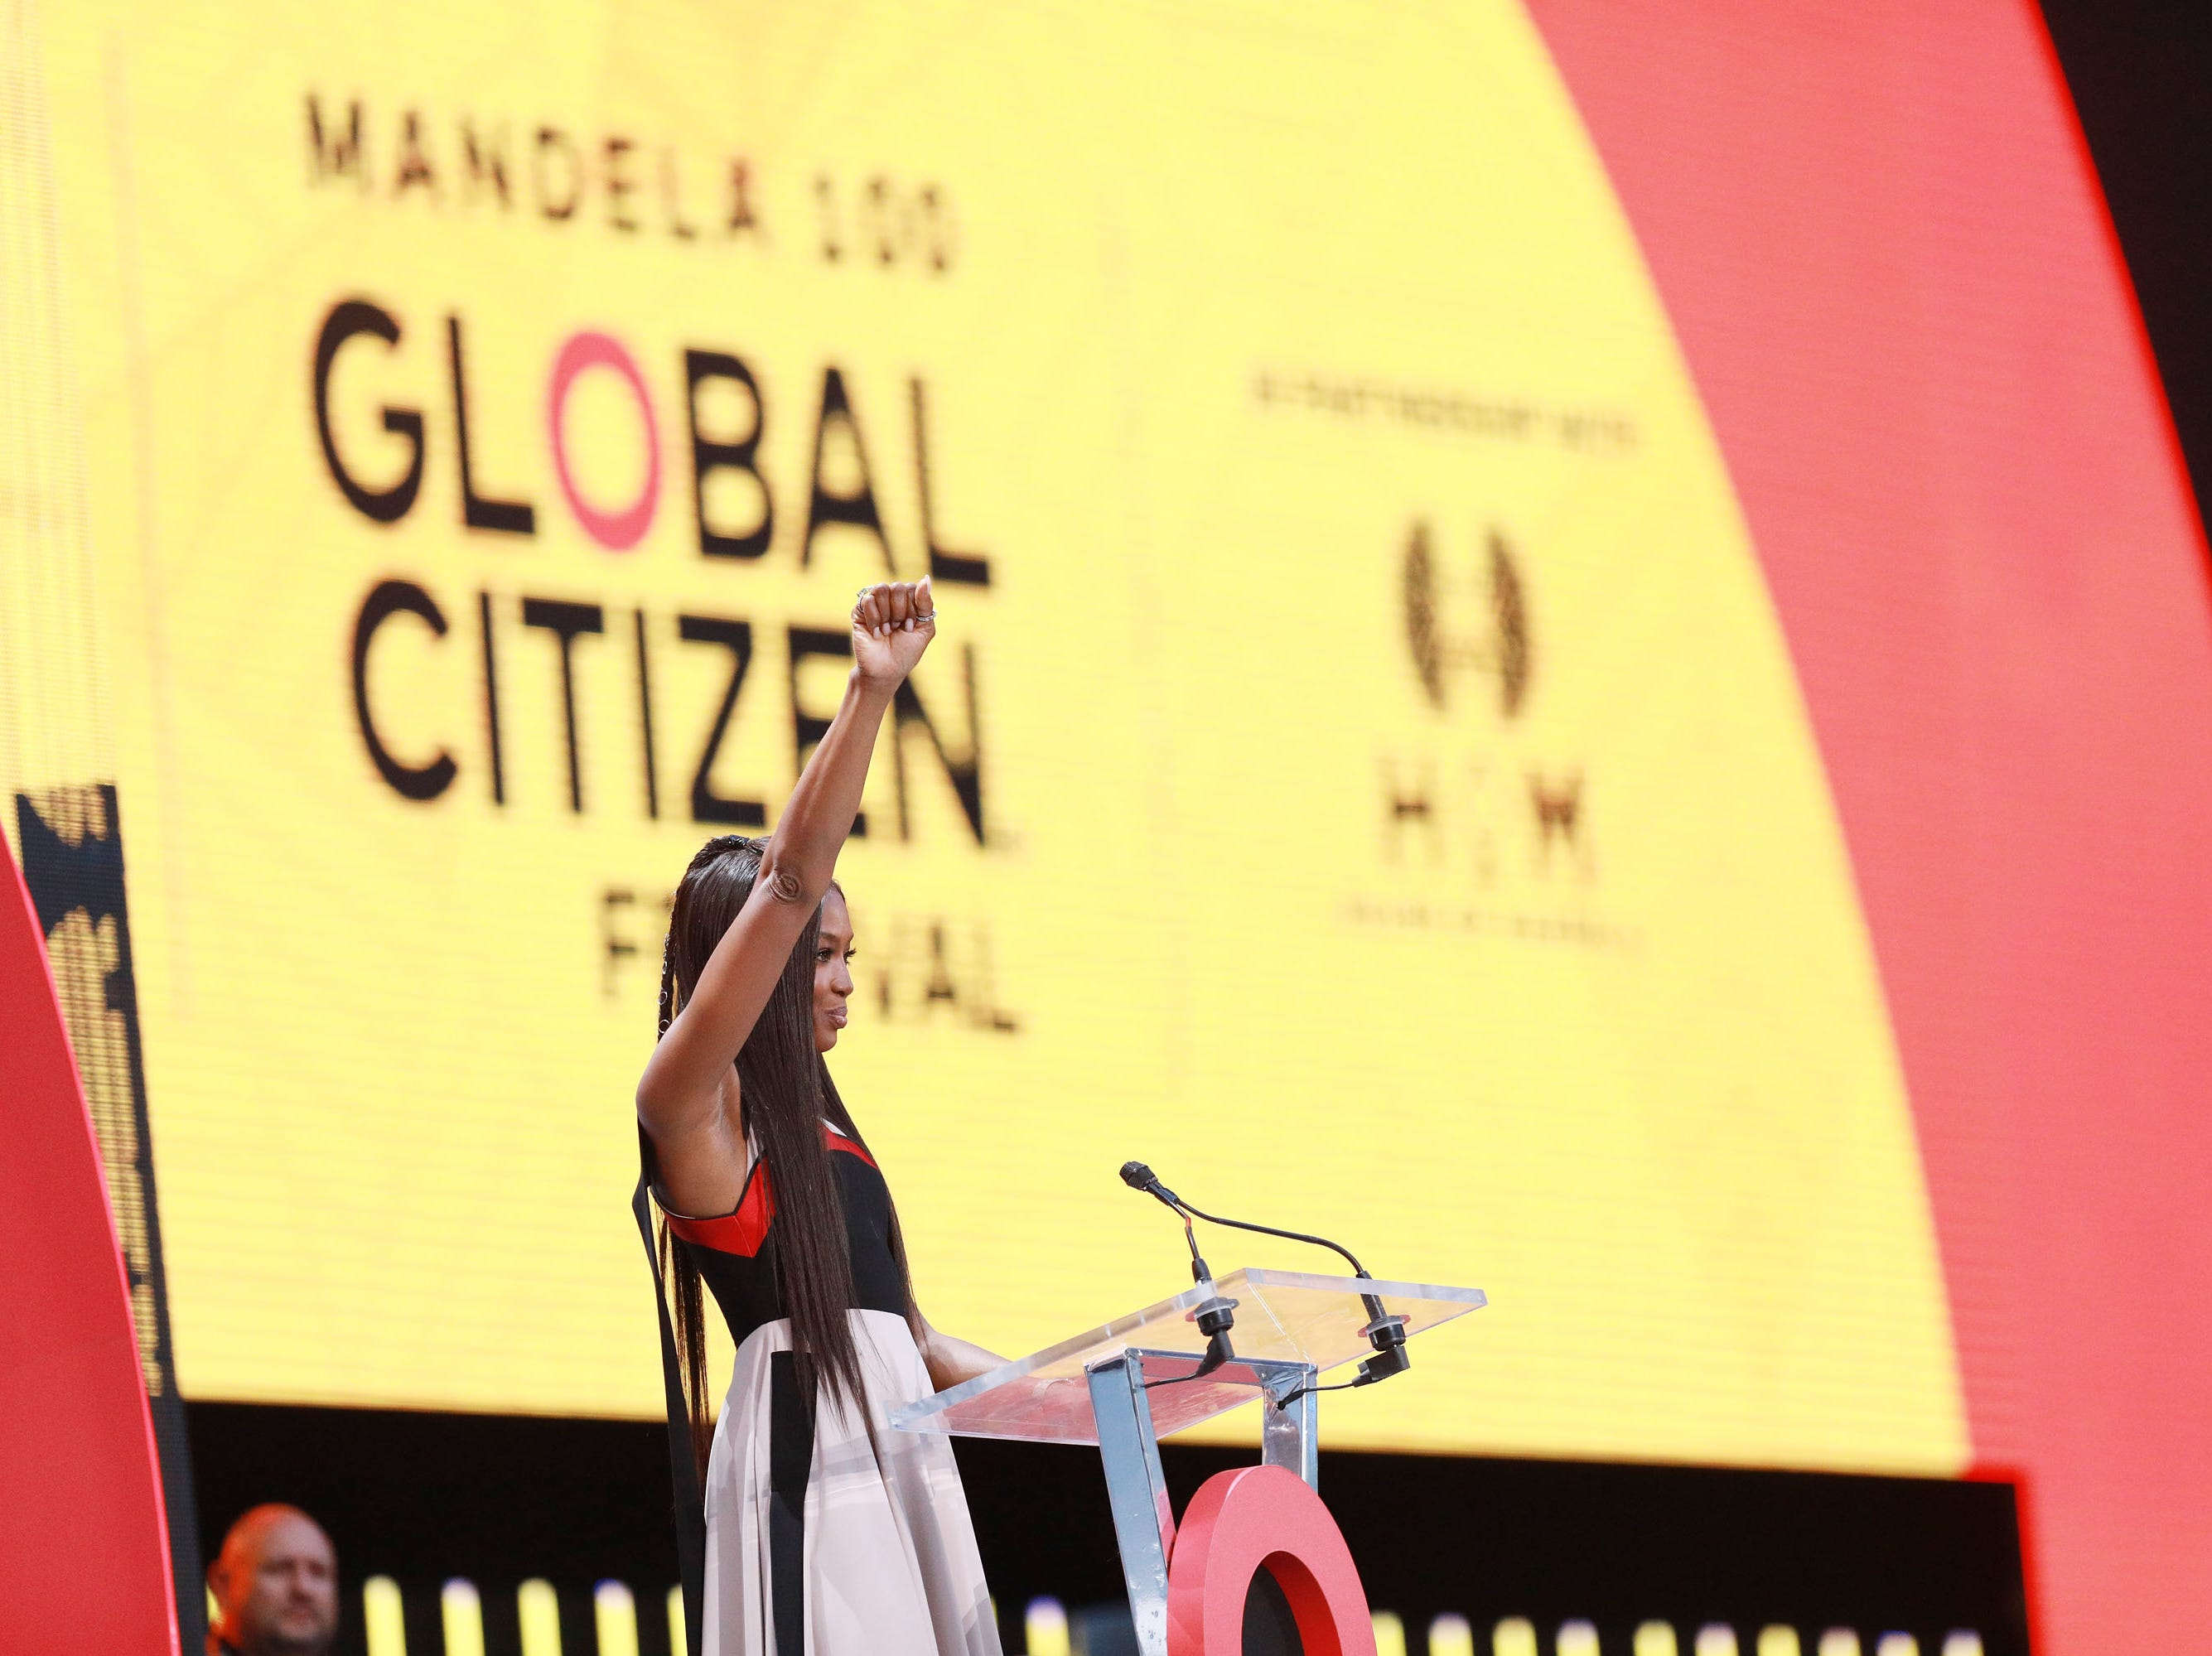 JOHANNESBURG, SOUTH AFRICA - DECEMBER 02: Naomi Campbell speaks on stage during the Global Citizen Festival: Mandela 100 at FNB Stadium on December 2, 2018 in Johannesburg, South Africa.  (Photo by Michelly Rall/Getty Images for Global Citizen Festival: Mandela 100) ORG XMIT: 775264426 ORIG FILE ID: 1067716302